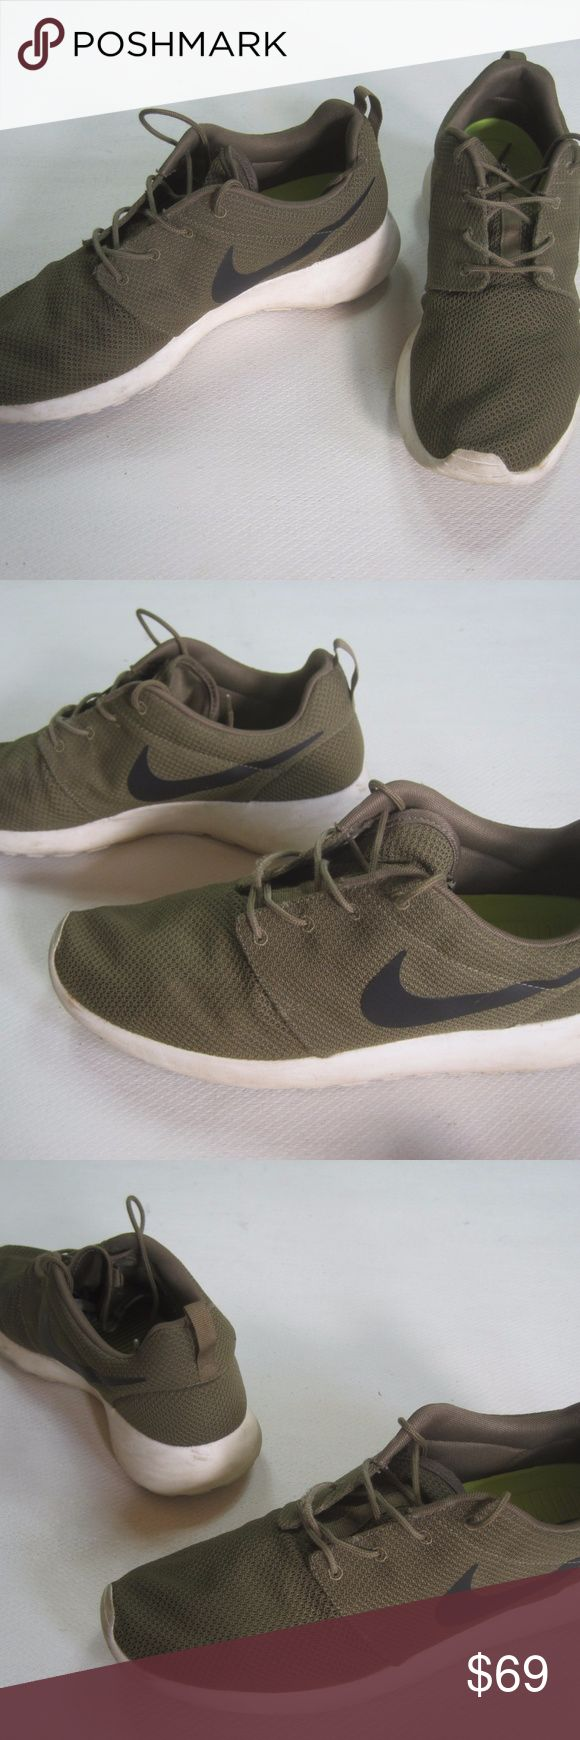 Best Drop Shipping Nike Roshe Run Couple running shoes Khaki[511881-201]